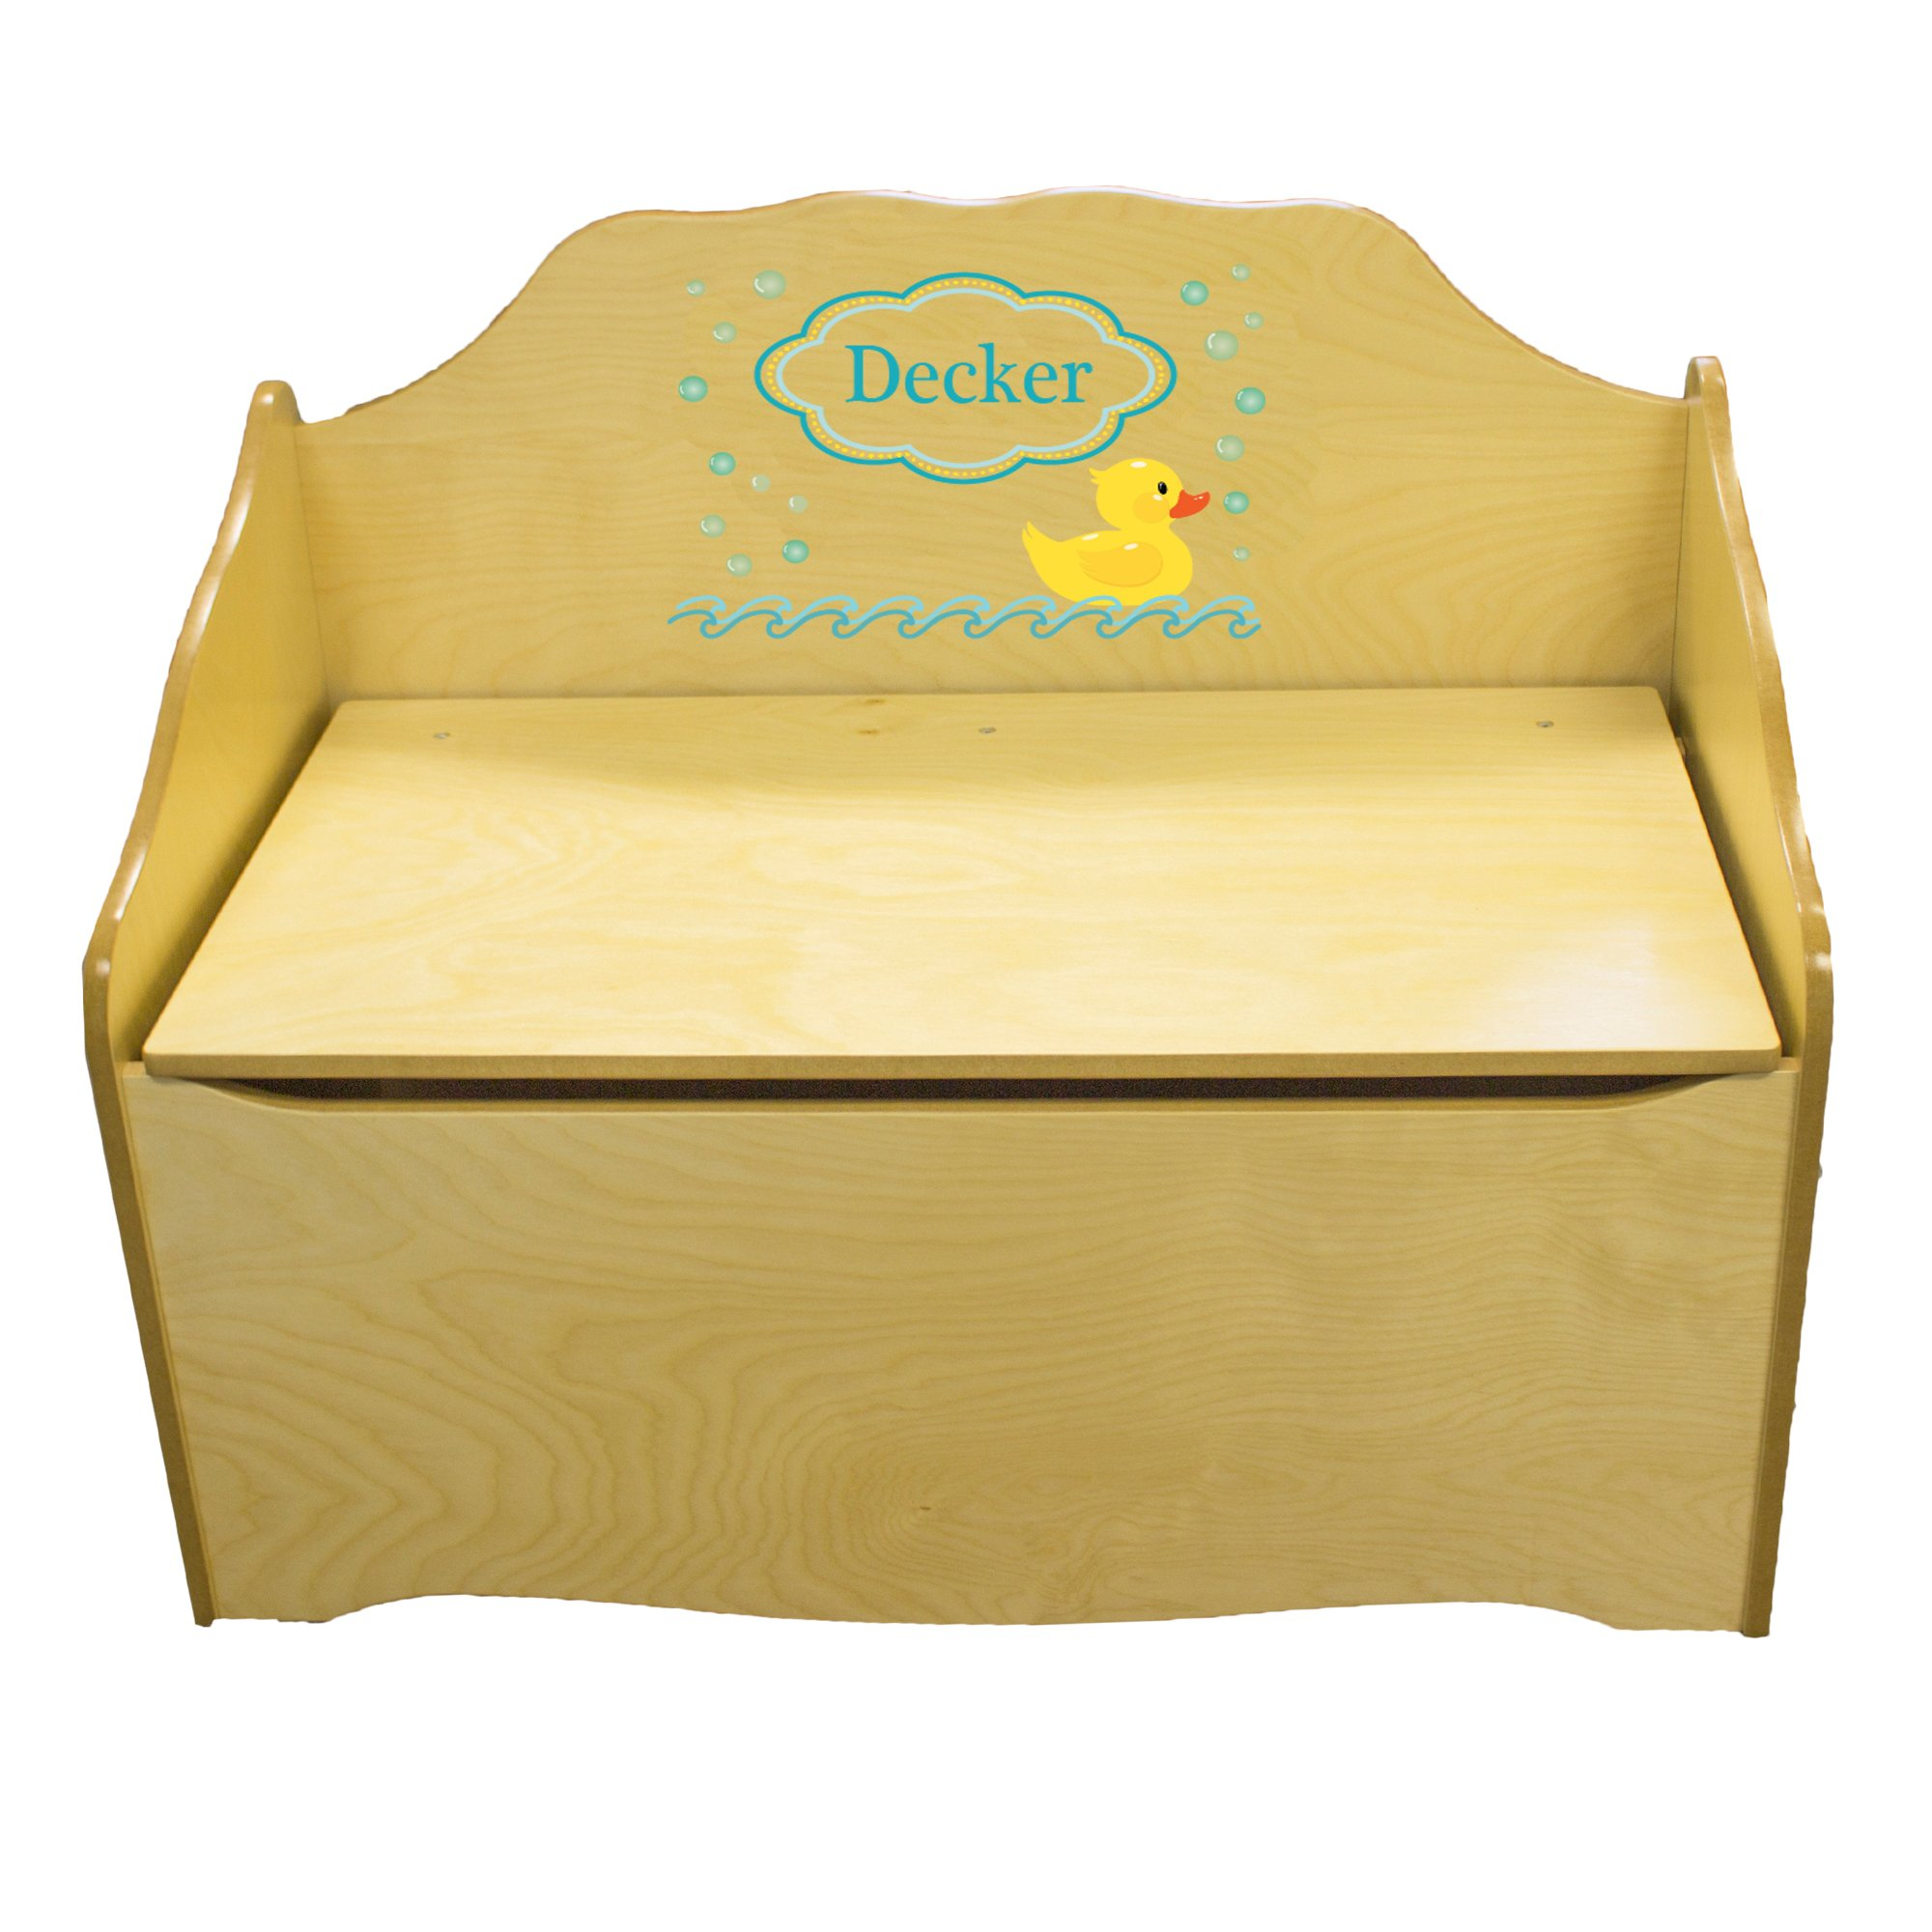 Personalized Rubber Ducky Childrens Natural Wooden Toy Chest